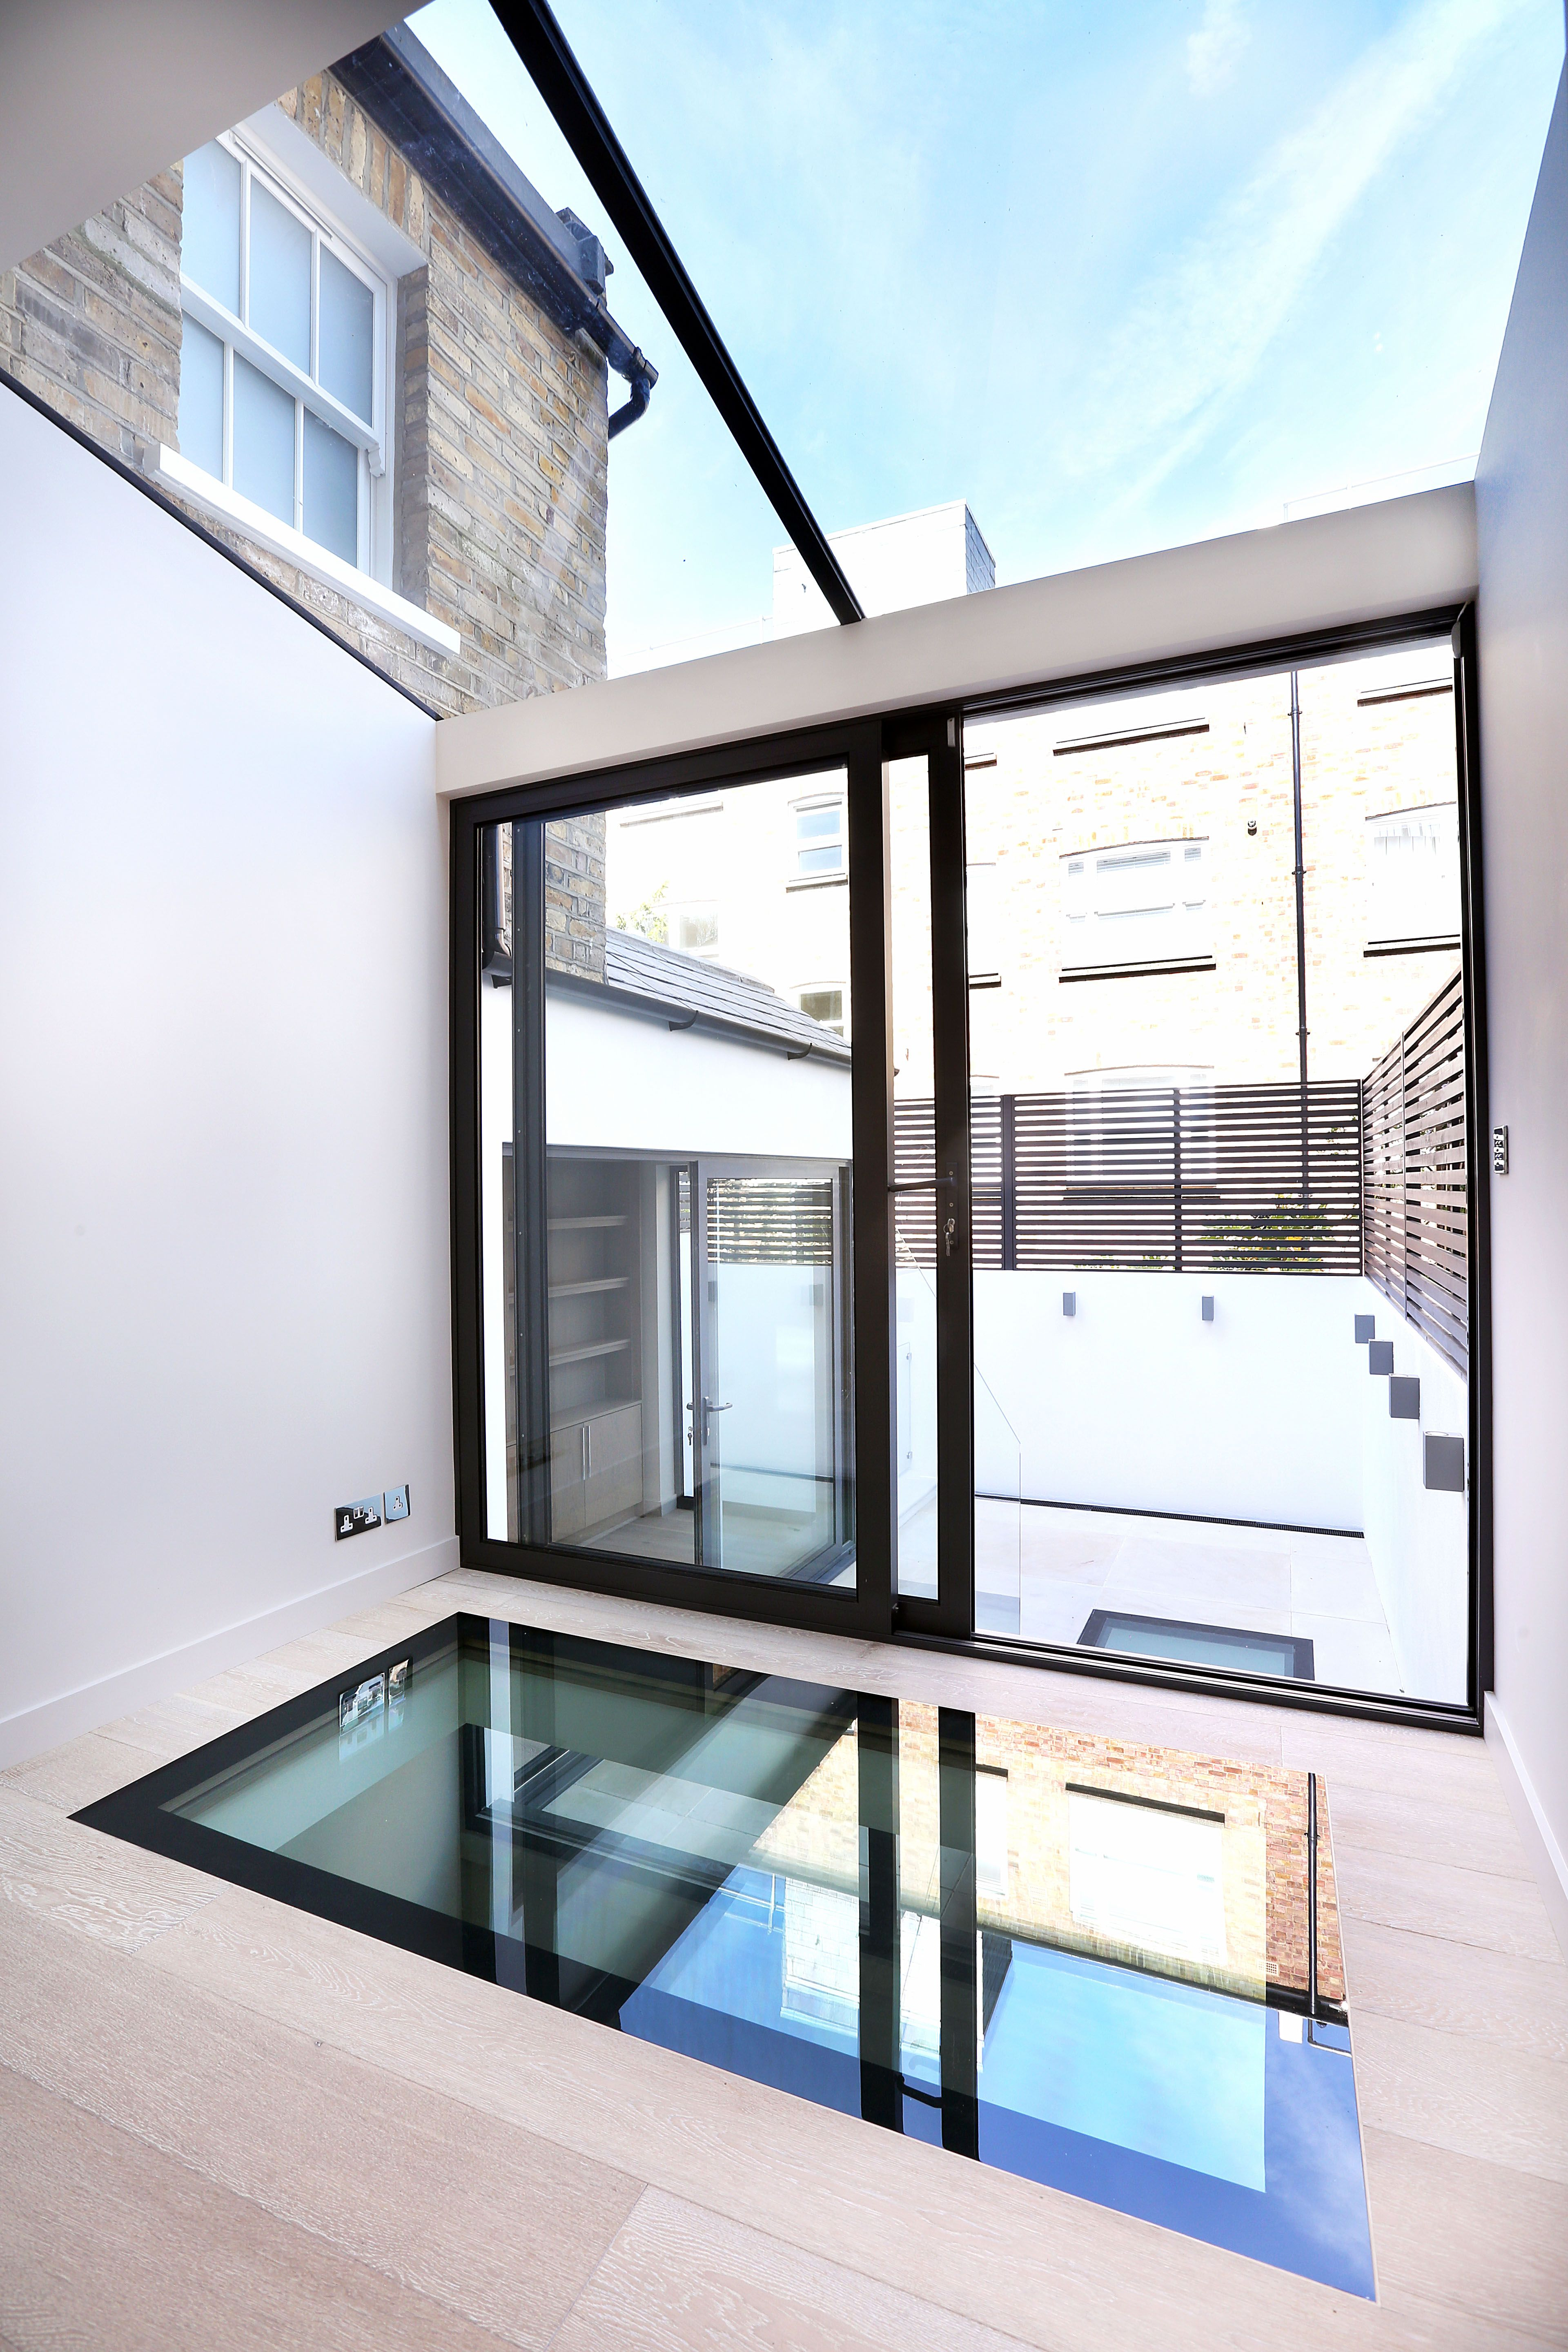 basement pool glass.  Basement Lightwell To First Floor Of Double Depth Basement Perfect For Modern High  Rise Or Updated Valley Home Throughout Basement Pool Glass O